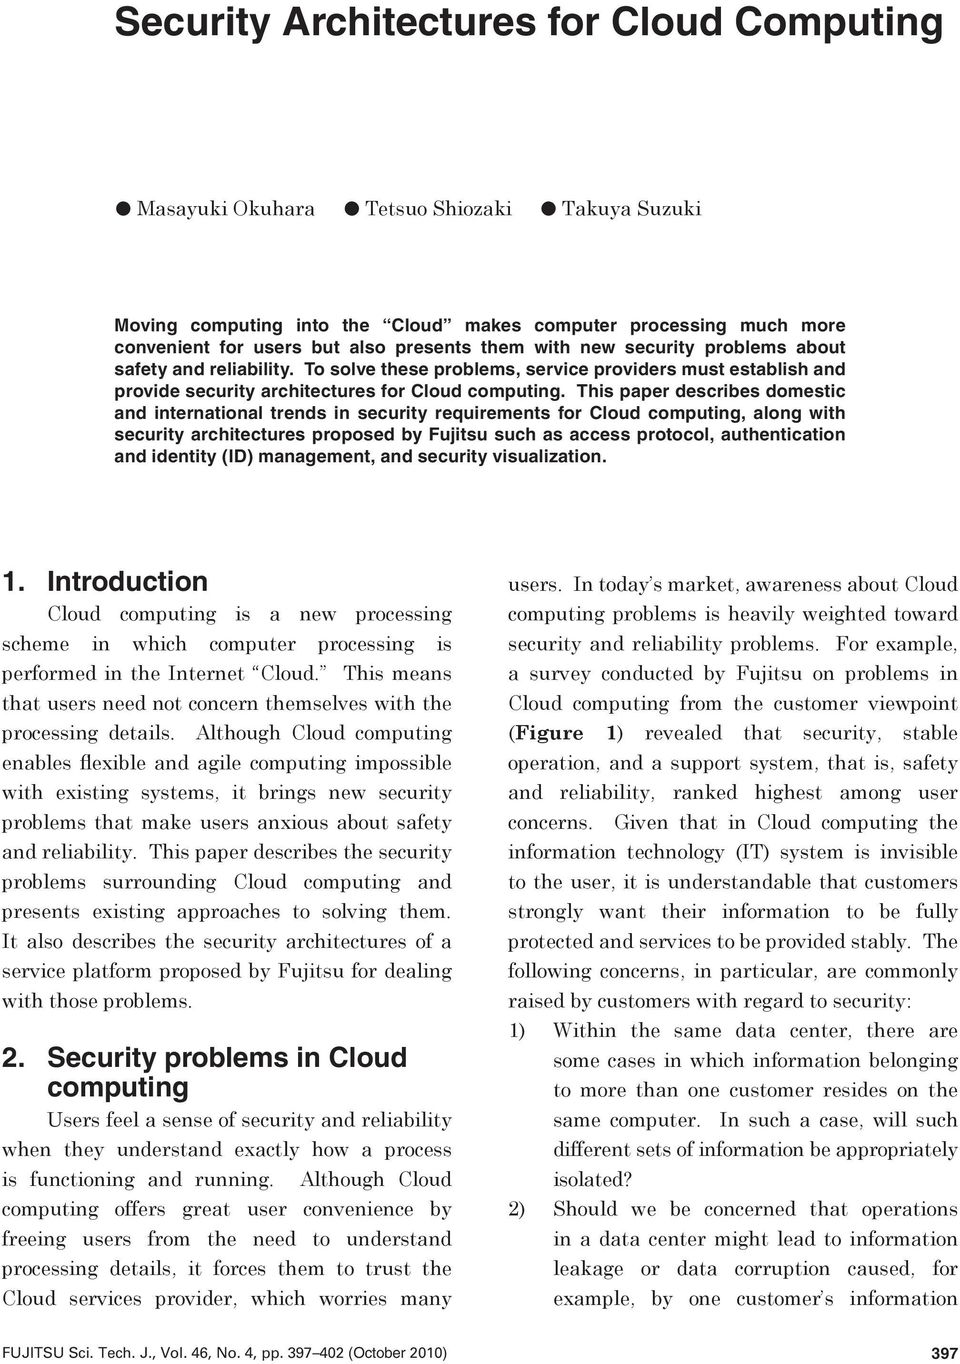 This paper describes domestic and international trends in security requirements for Cloud computing, along with security architectures proposed by Fujitsu such as access protocol, authentication and